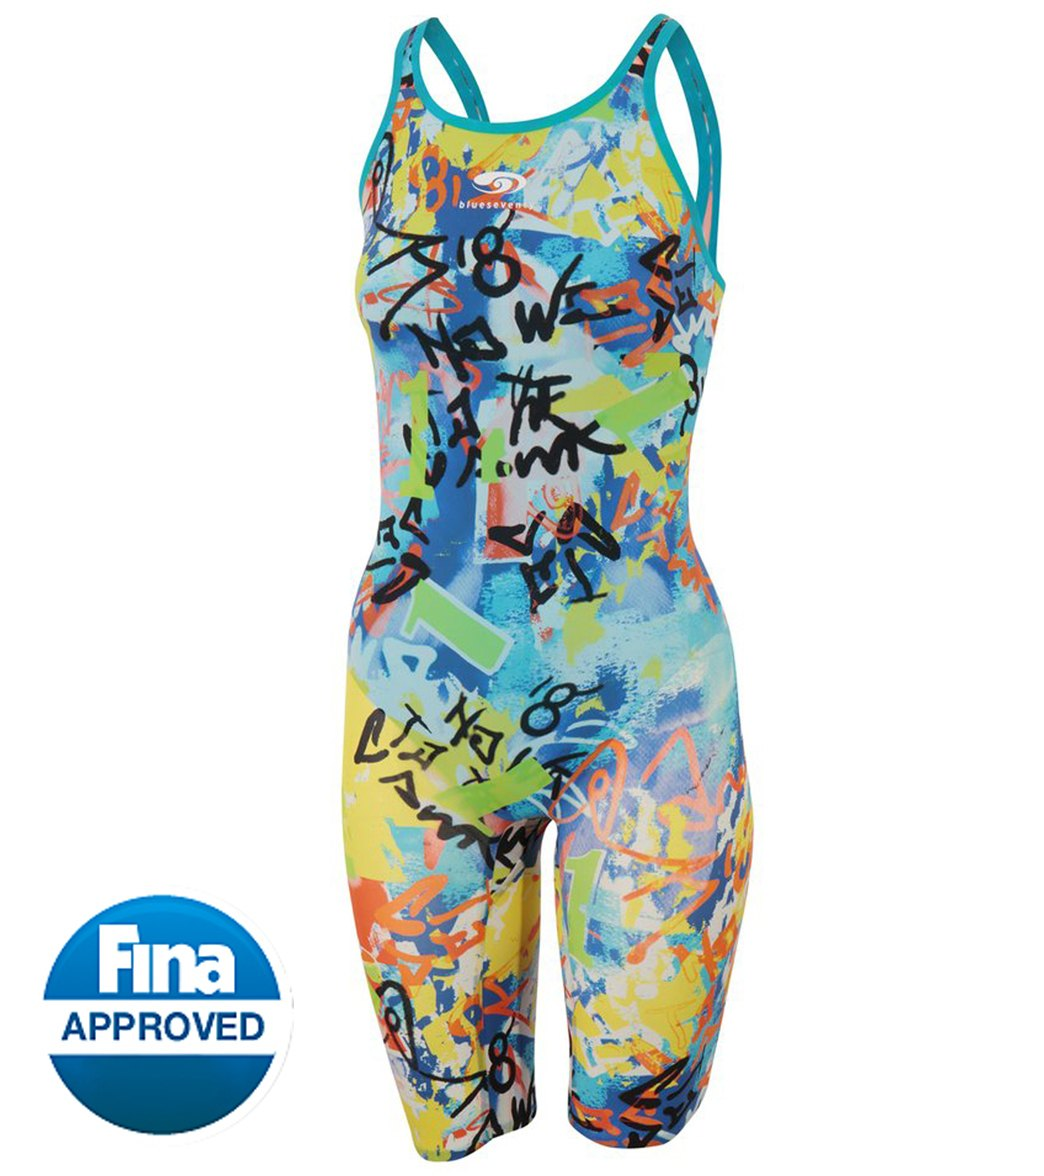 ee0f4ebd15d Blueseventy Women's Nero Fit Kneeskin Tech Suit Swimsuit at ...